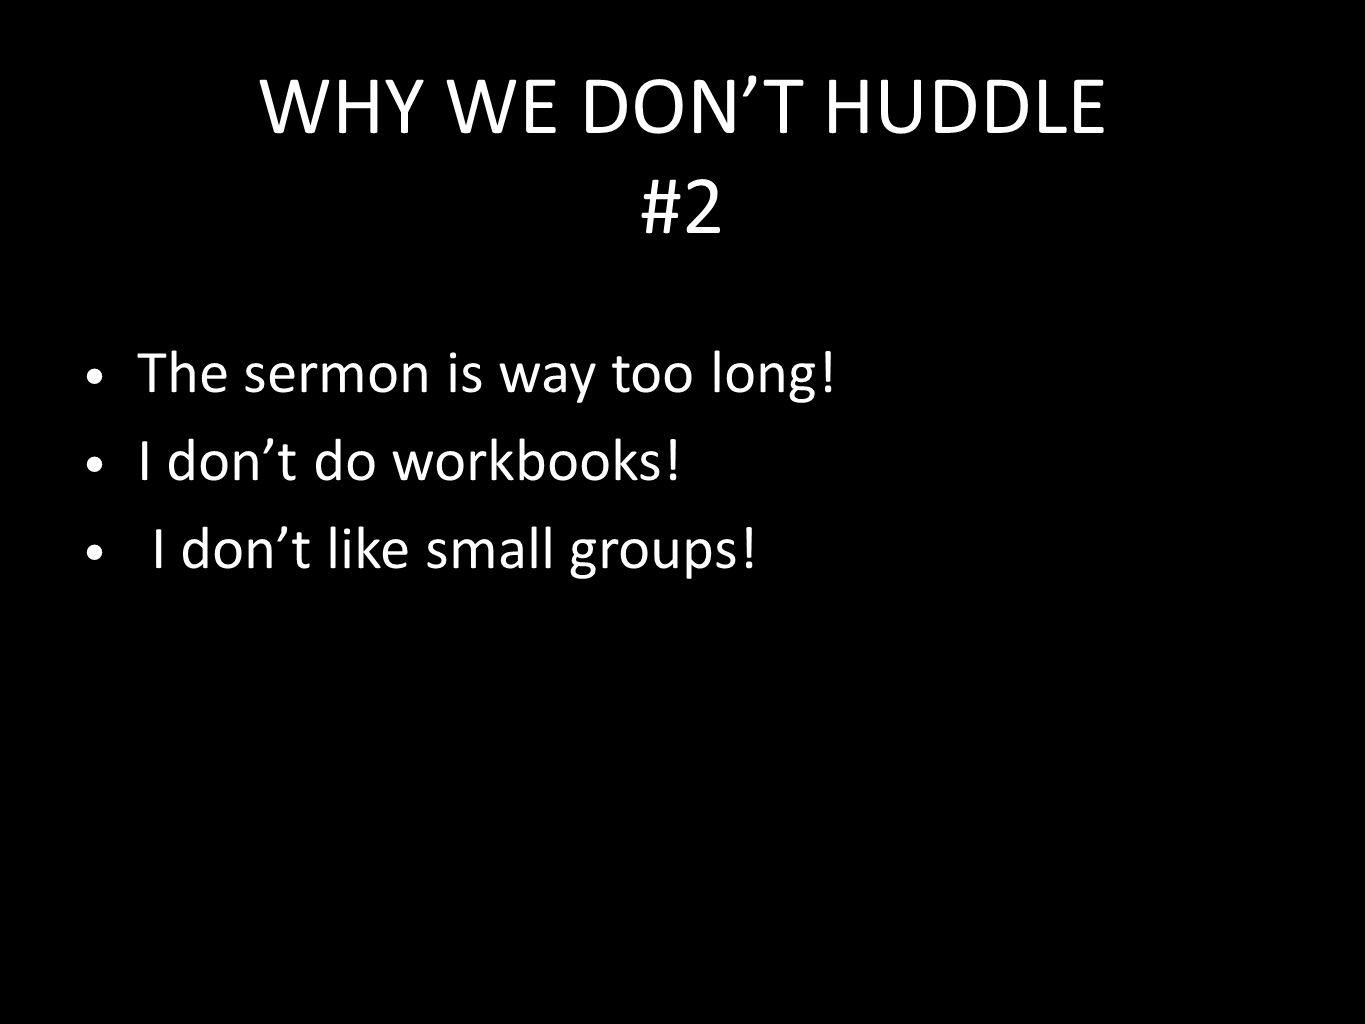 WHY WE DON'T HUDDLE #2 The sermon is way too long! I don't do workbooks! I don't like small groups!